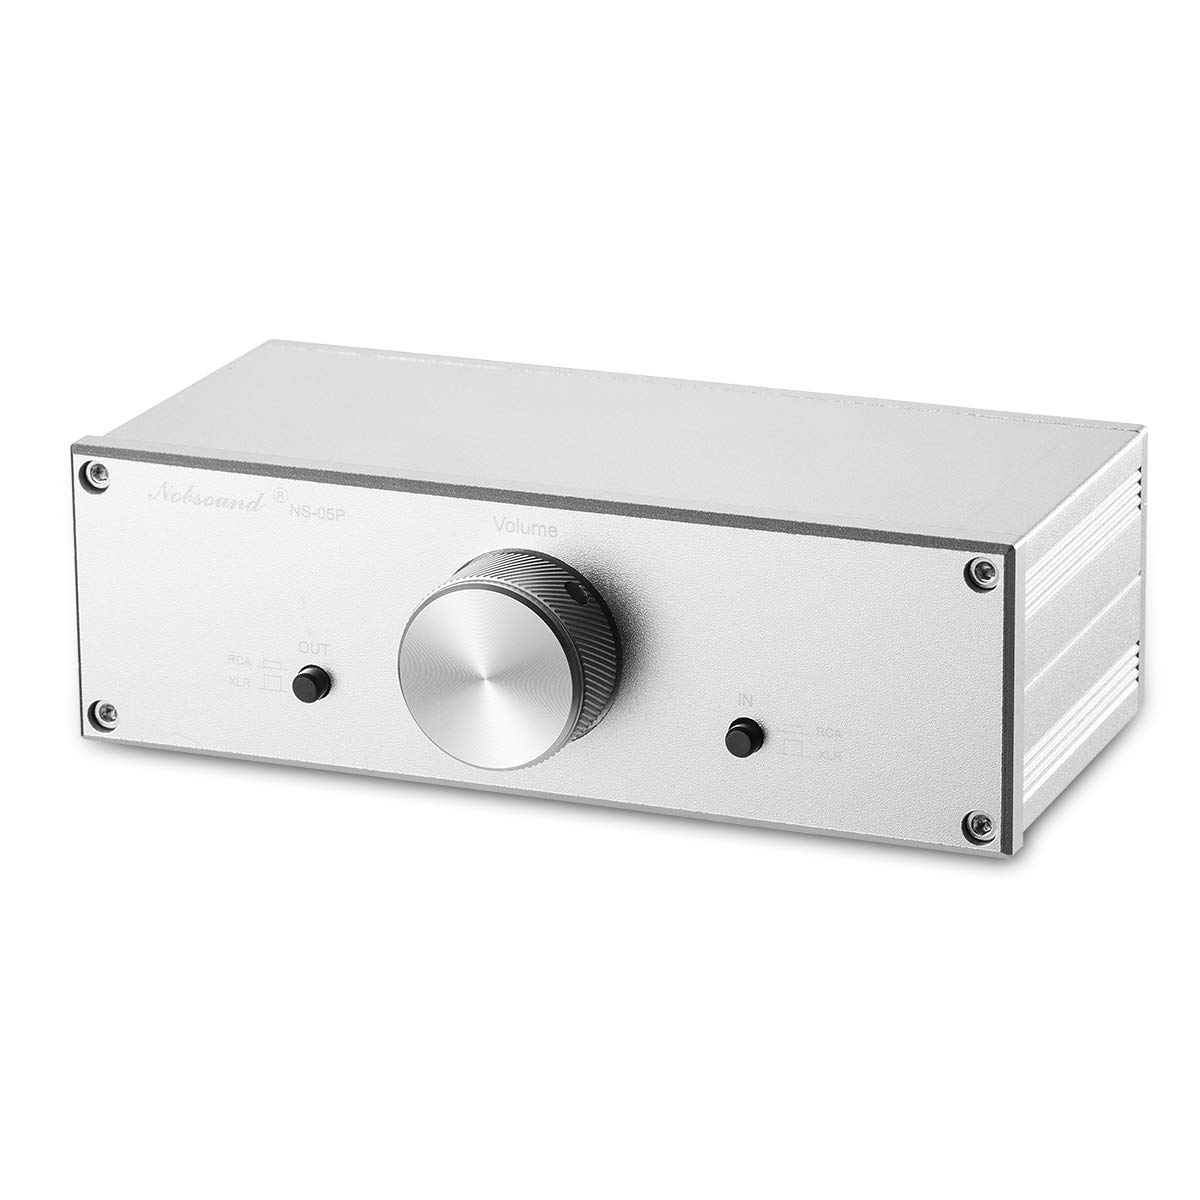 Nobsound Mini Fully-Balanced/Single-Ended Passive Preamp; Hi-Fi Pre-Amplifier; XLR/RCA Volume Controller for Active Monitor Speakers (Silver) 6245435007062